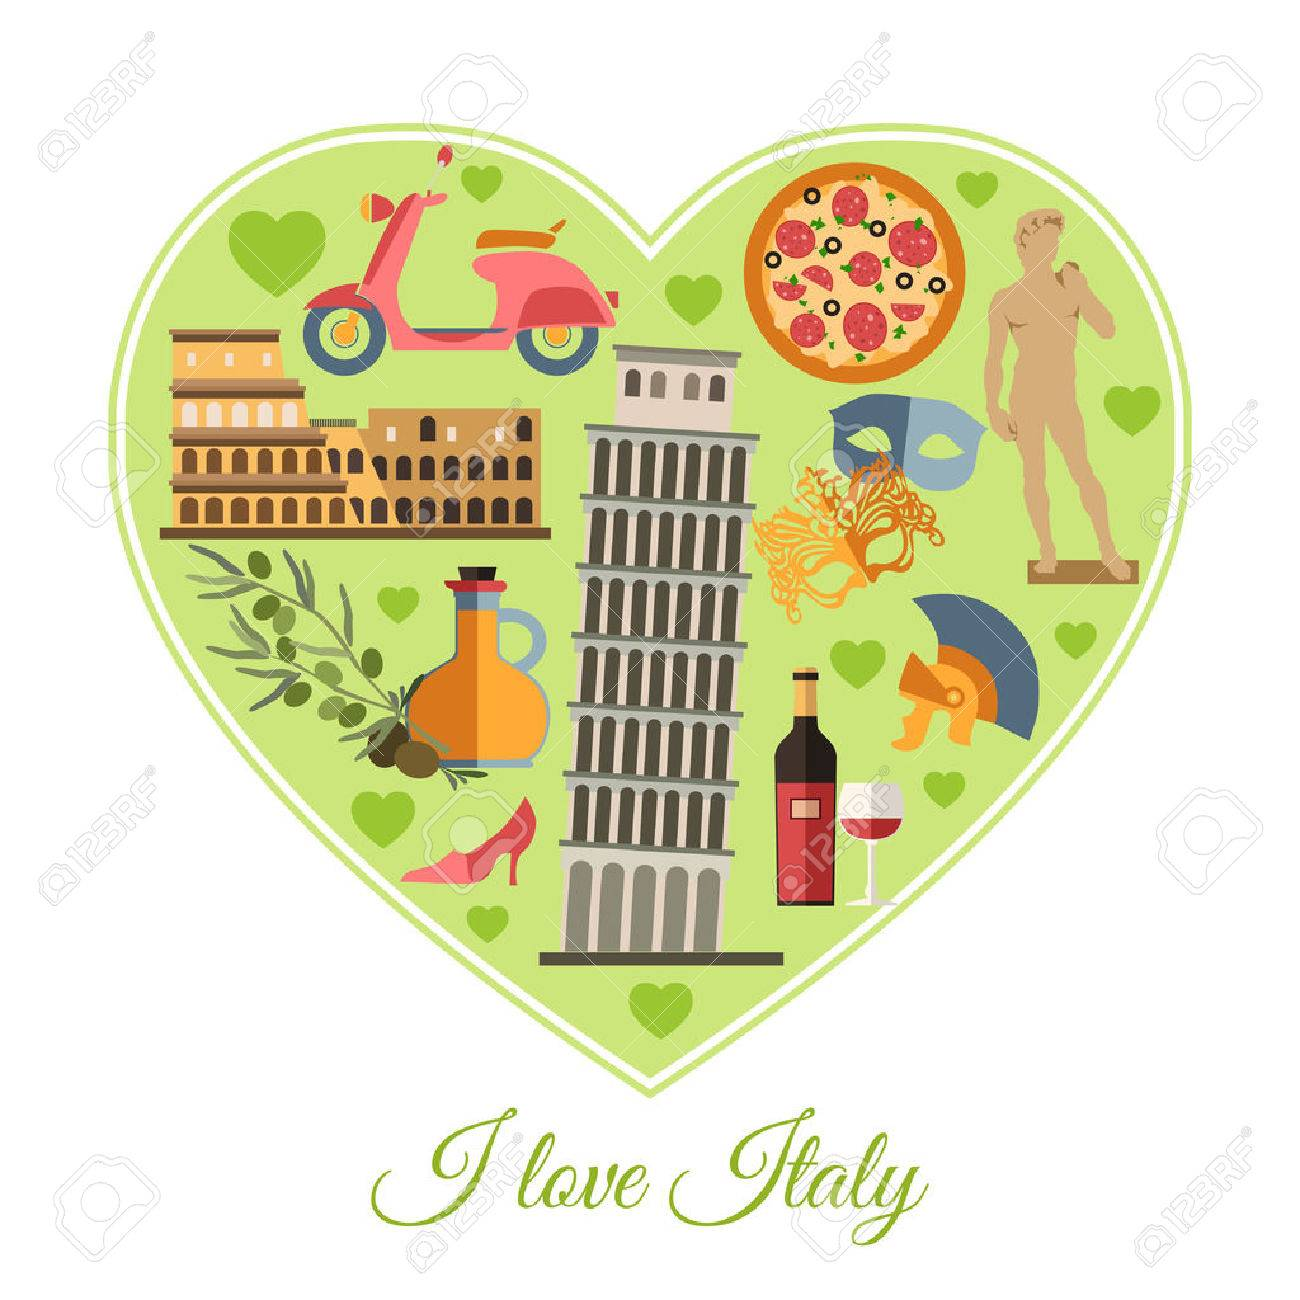 I love italy italy travel background with place for text isolated italy travel background with place for text isolated heart shape with biocorpaavc Images